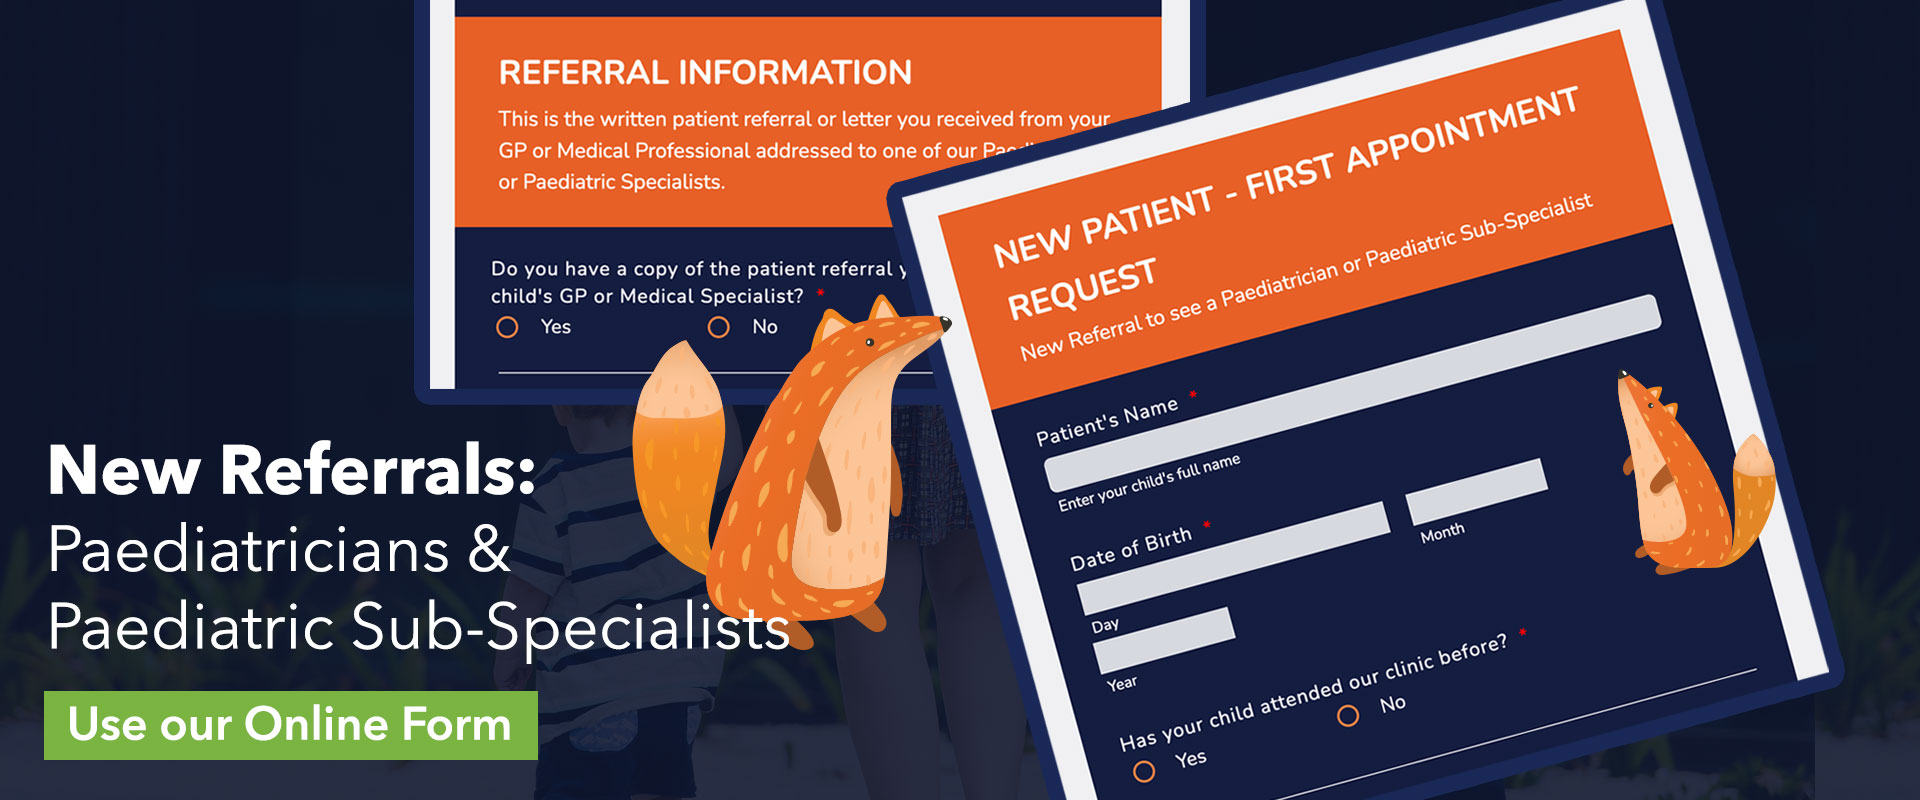 New Patients & New Referrals - Melbourne Paediatric Specialists